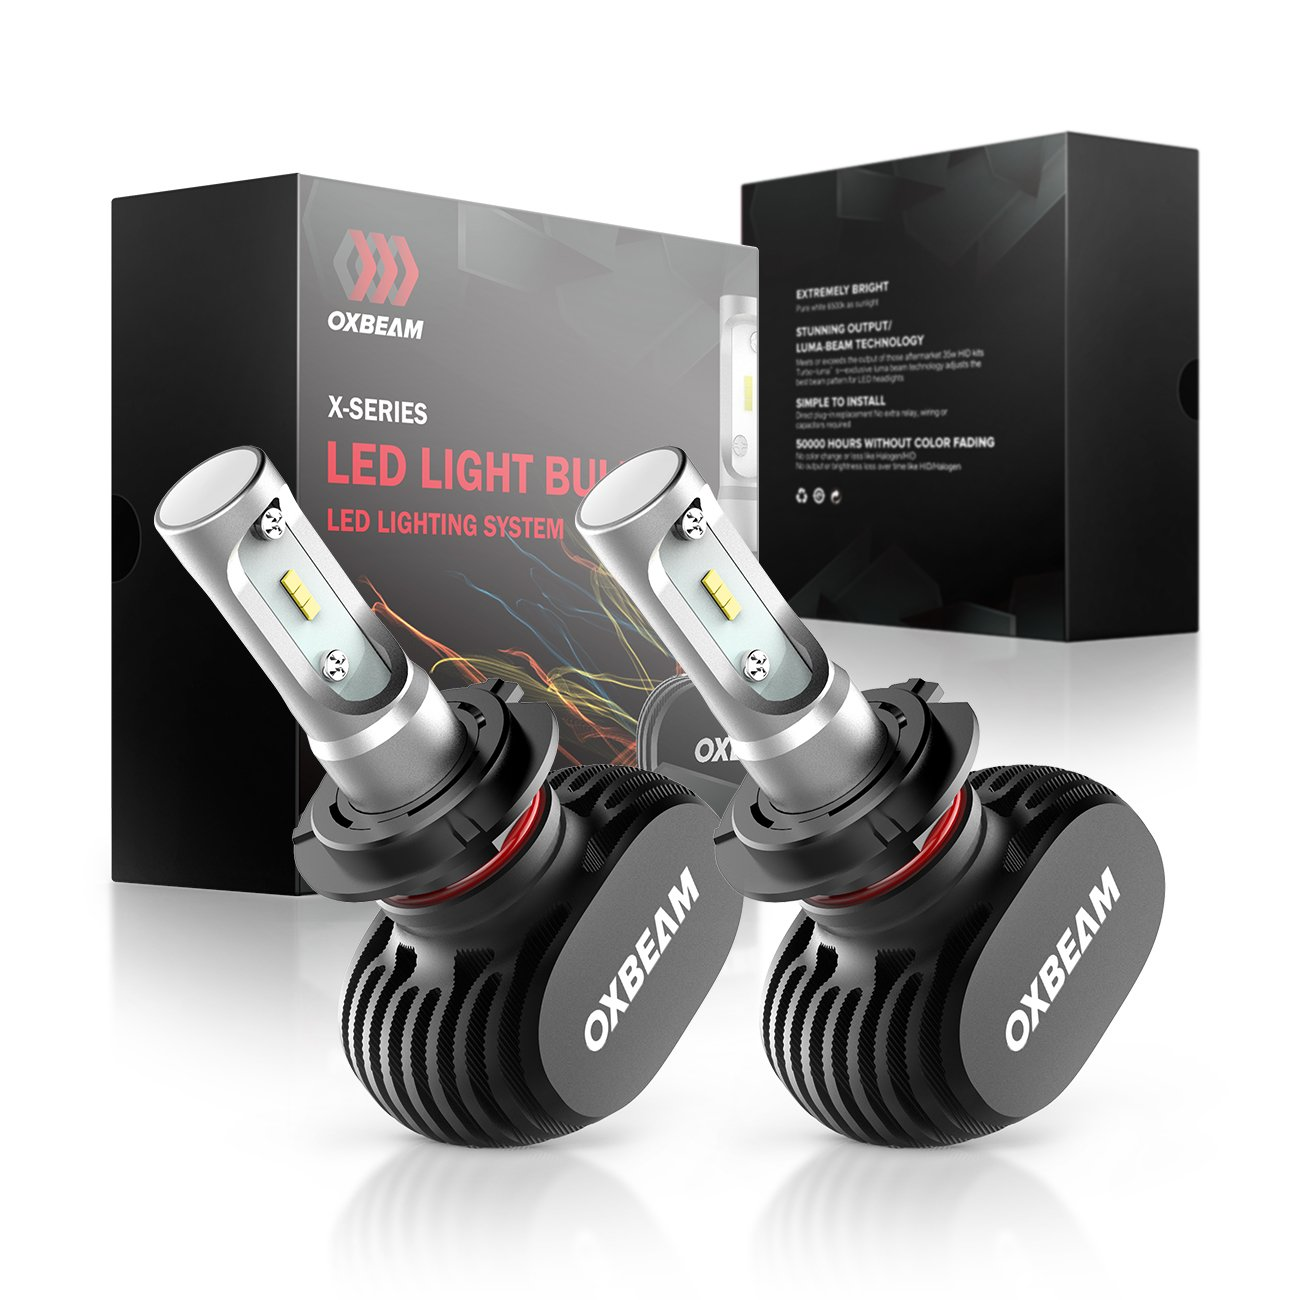 OXBEAM H7 LED Headlight Bulbs 50W 8000 Lumens 6500K AII-in-One Conversion Kit X Series Headlight Bulb Xenon White Extremely Bright (Set of 2)- 1 Year Warranty